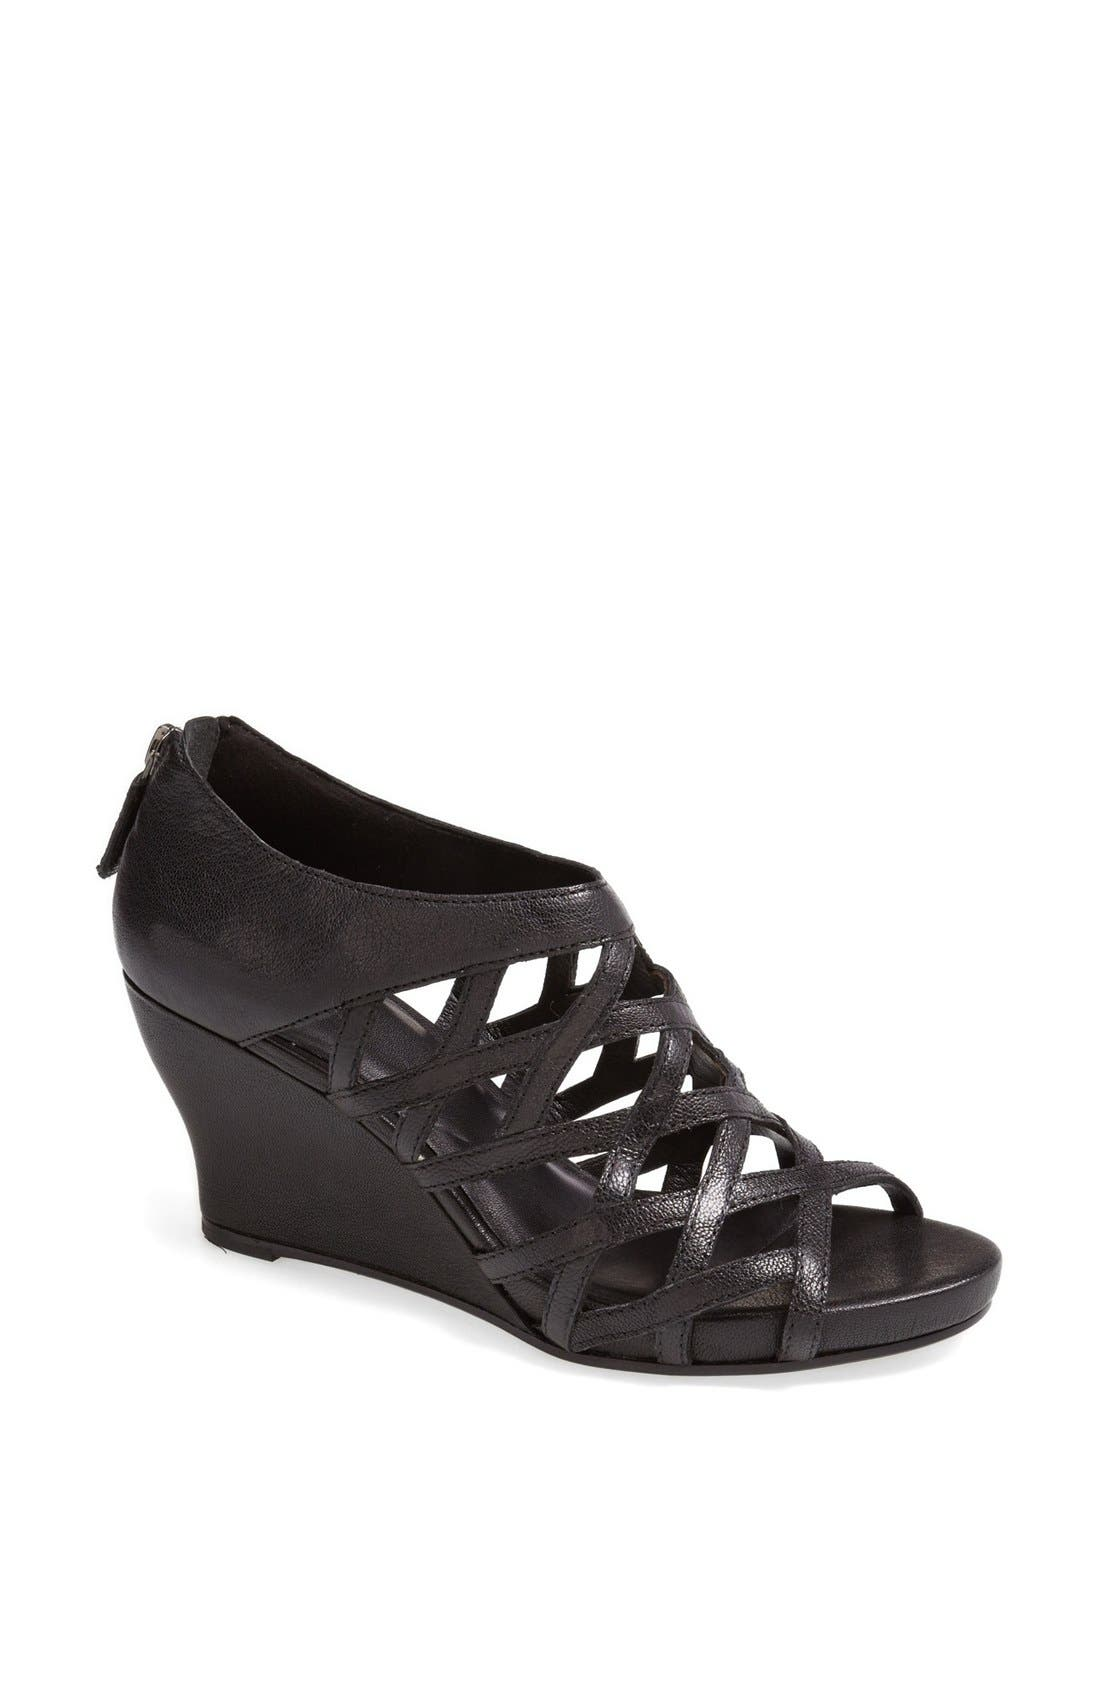 Alternate Image 1 Selected - Eileen Fisher 'Cage' Sandal